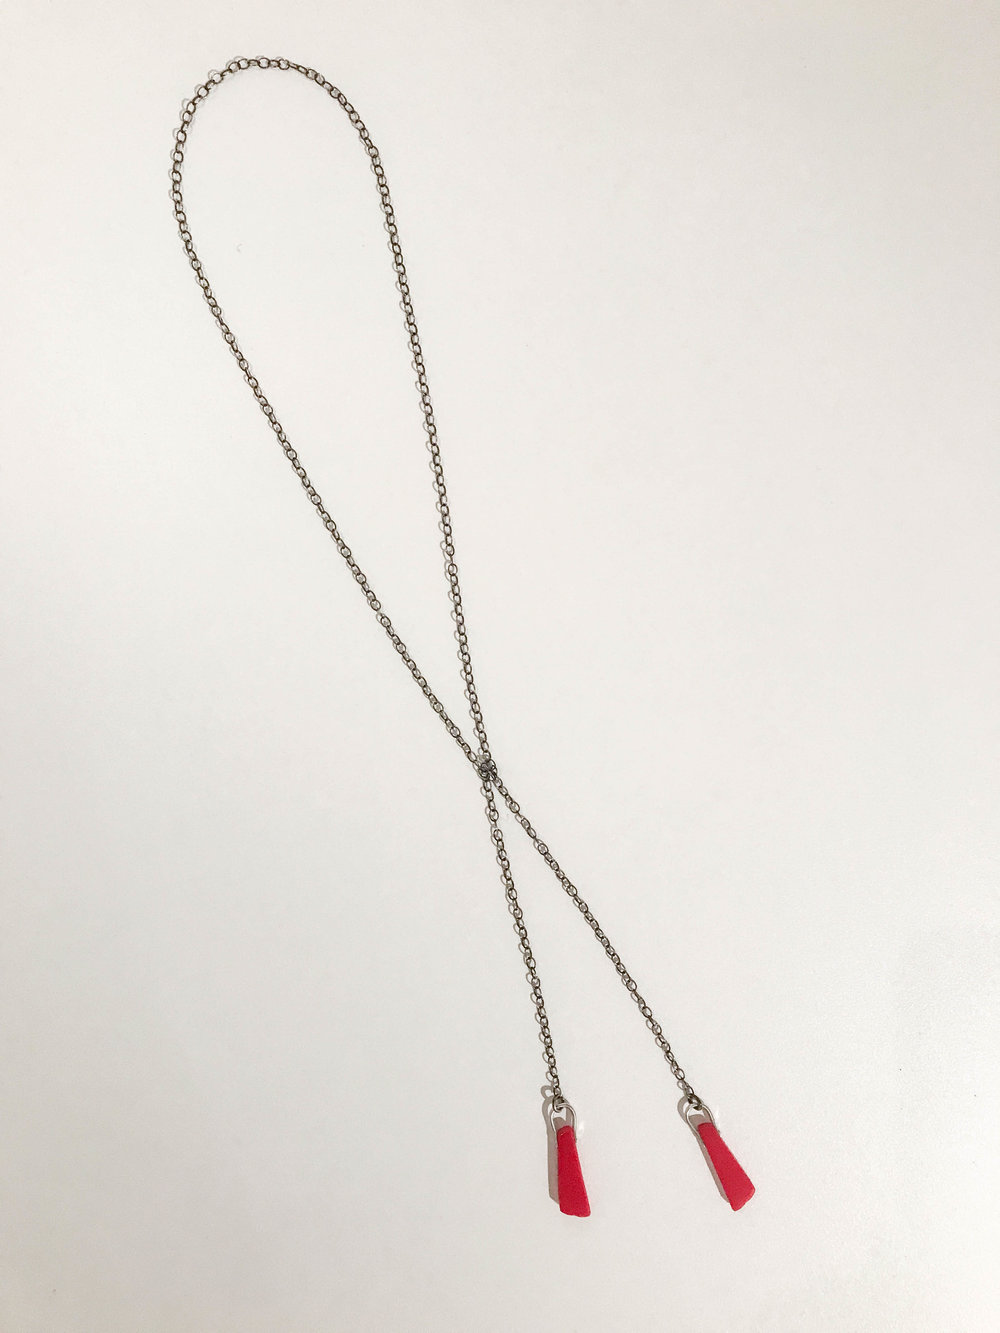 Lariat necklace, oxidized sterling silver with vintage bakelite, $170